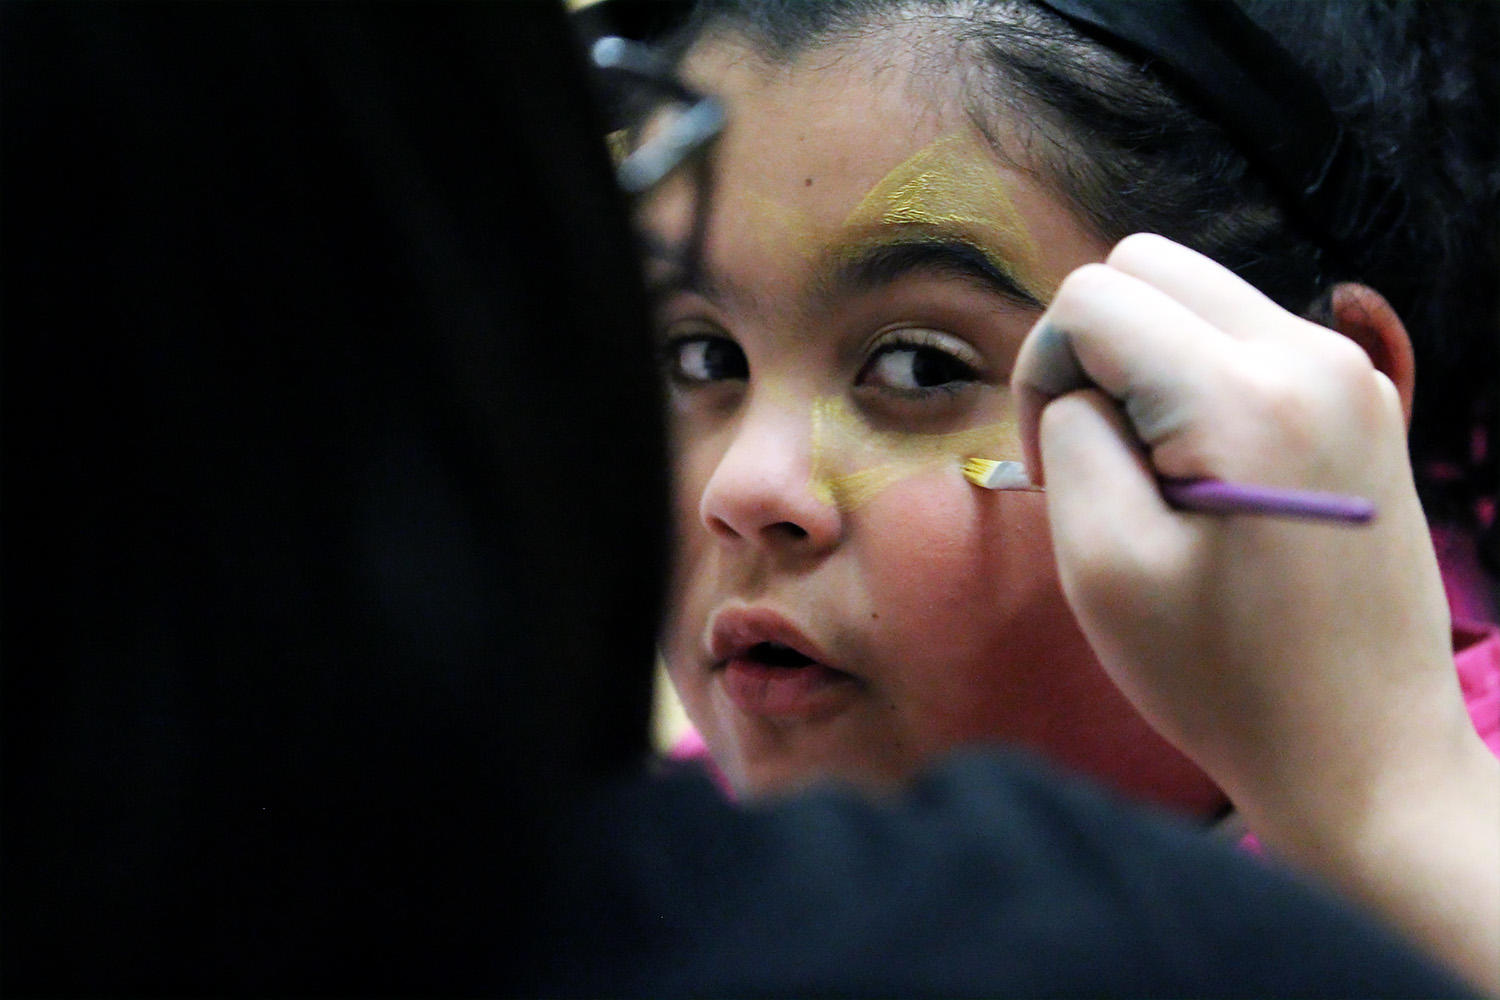 A John Mills student gets her face painted at the PTA's Family Fun Fair.